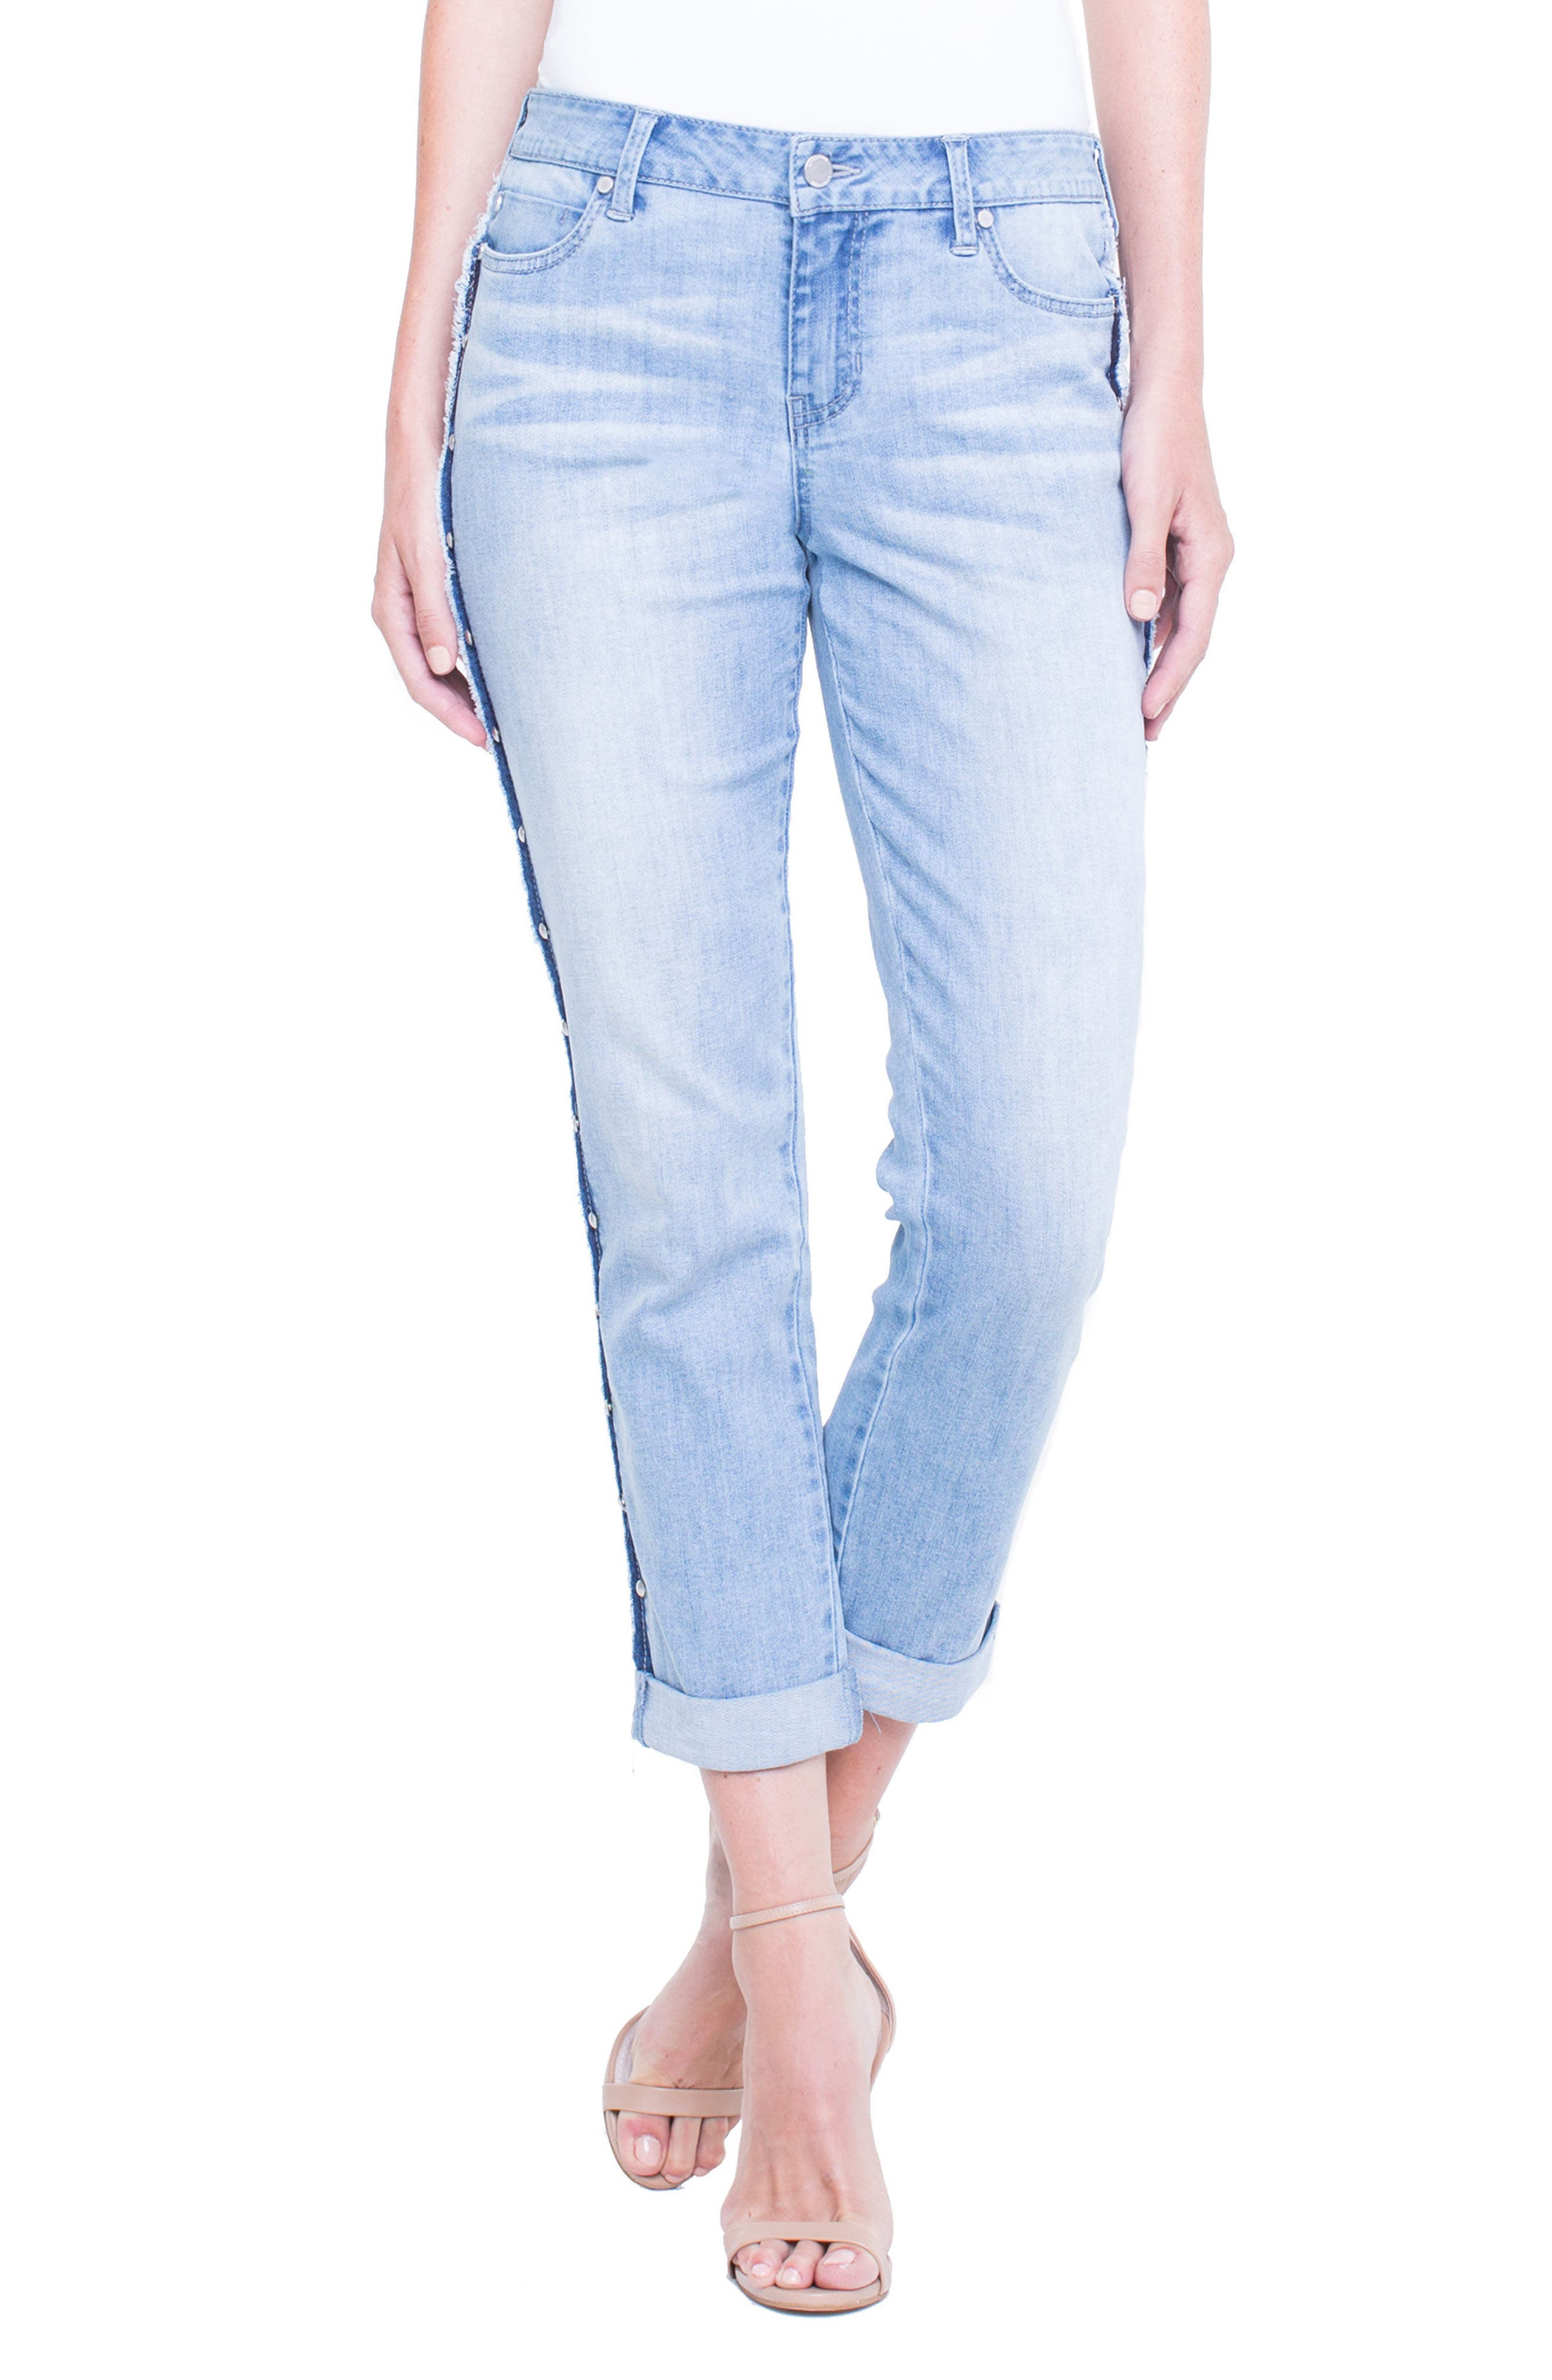 Alternate Image 1 Selected - Liverpool Jeans Company Perry Slim Side Stud Boyfriend Jeans